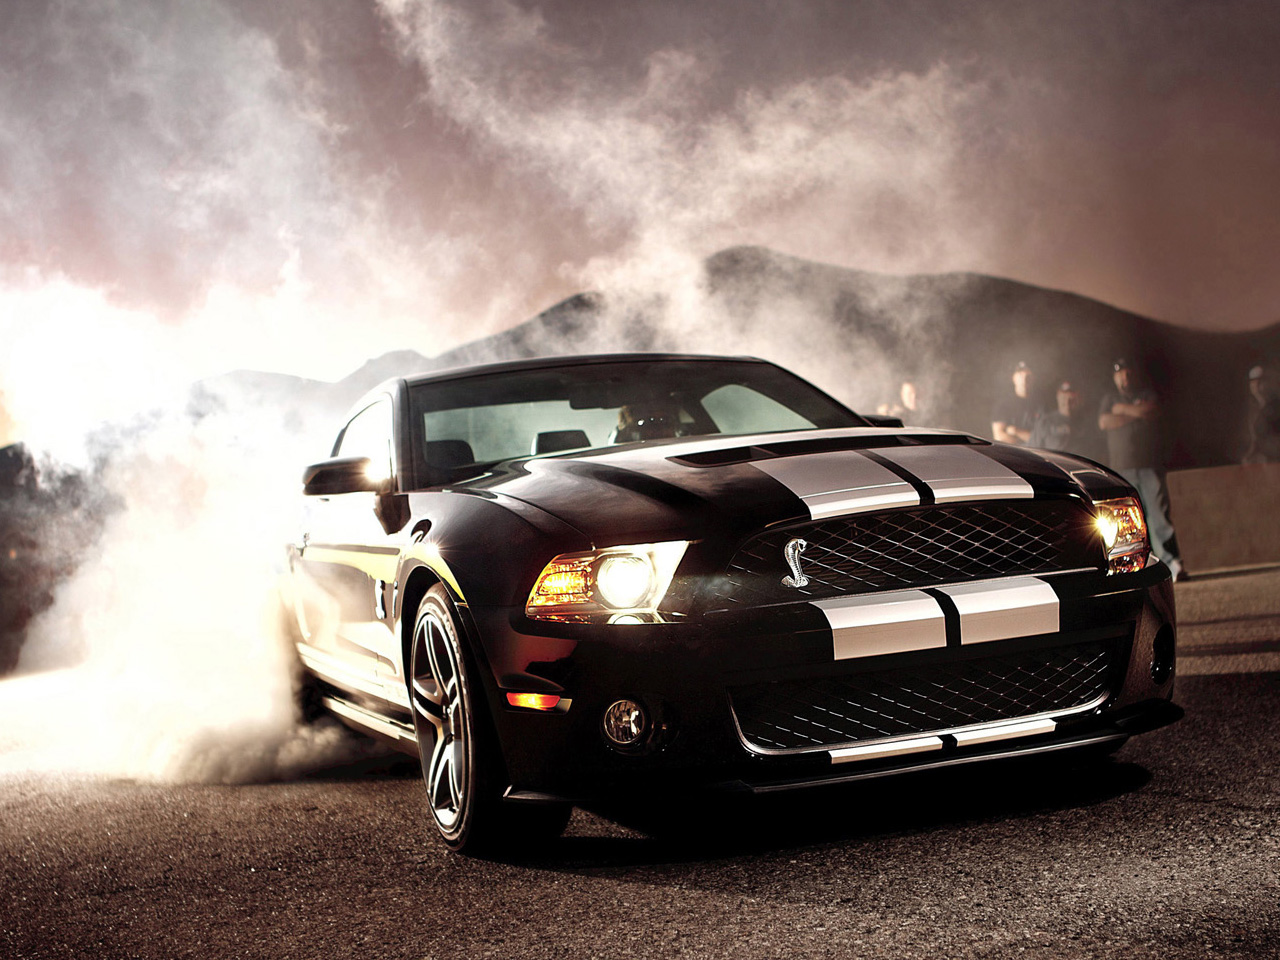 2012 Ford Shelby Gt500 #10